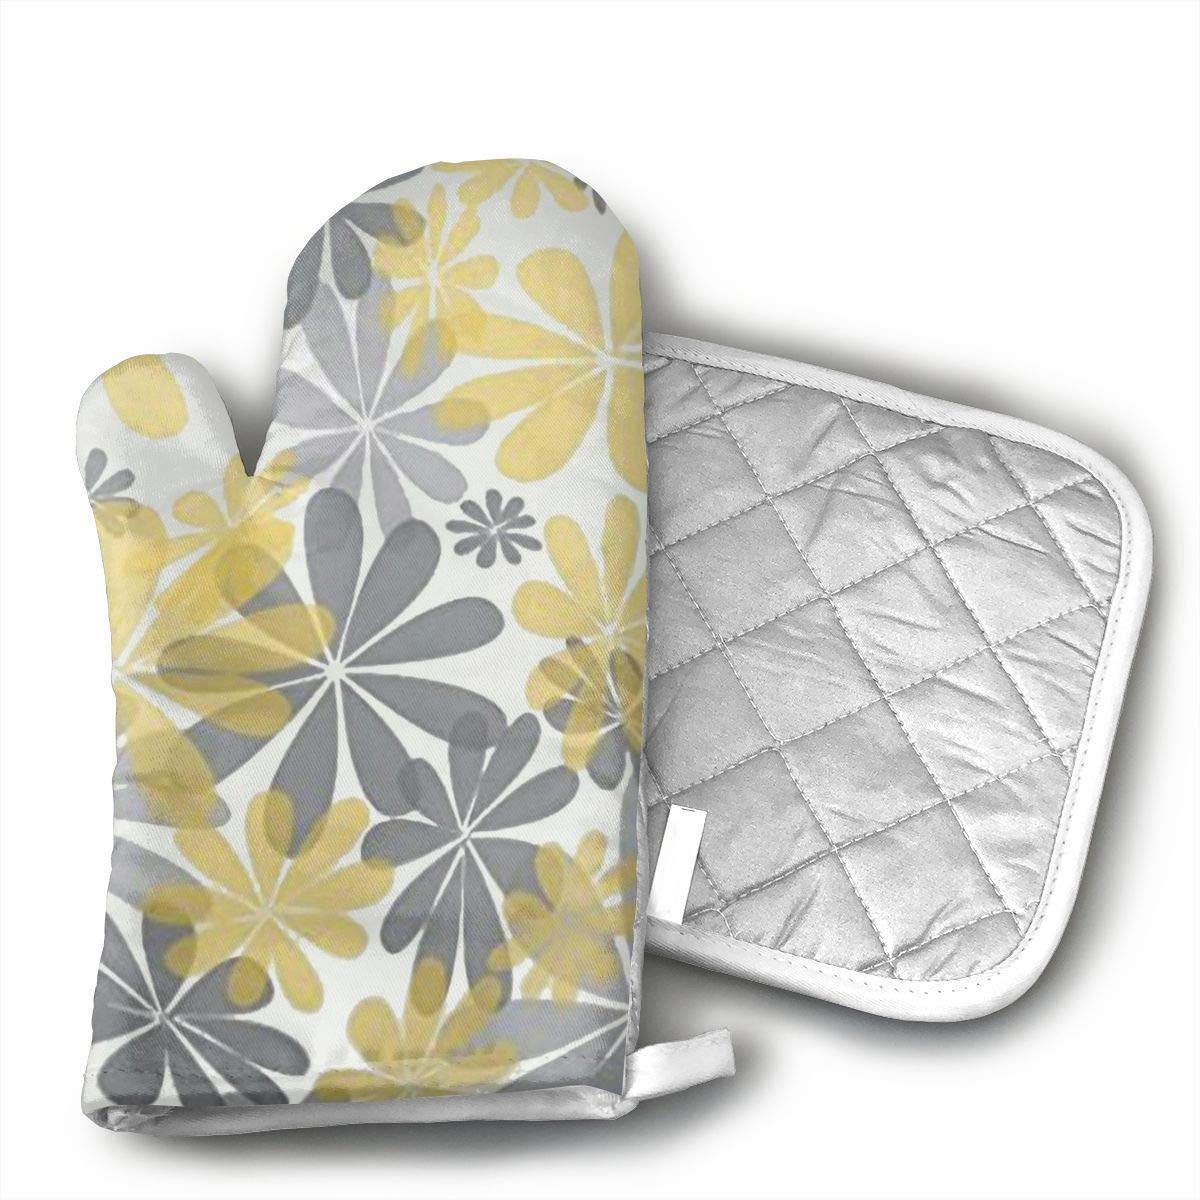 HGUIDHG Covers Gray and Yellow Modern Daisy with Oven Mitts+Insulated Square Mat,Heat Resistant Kitchen Gloves Soft Insulated Deep Pockets, Non-Slip Handles